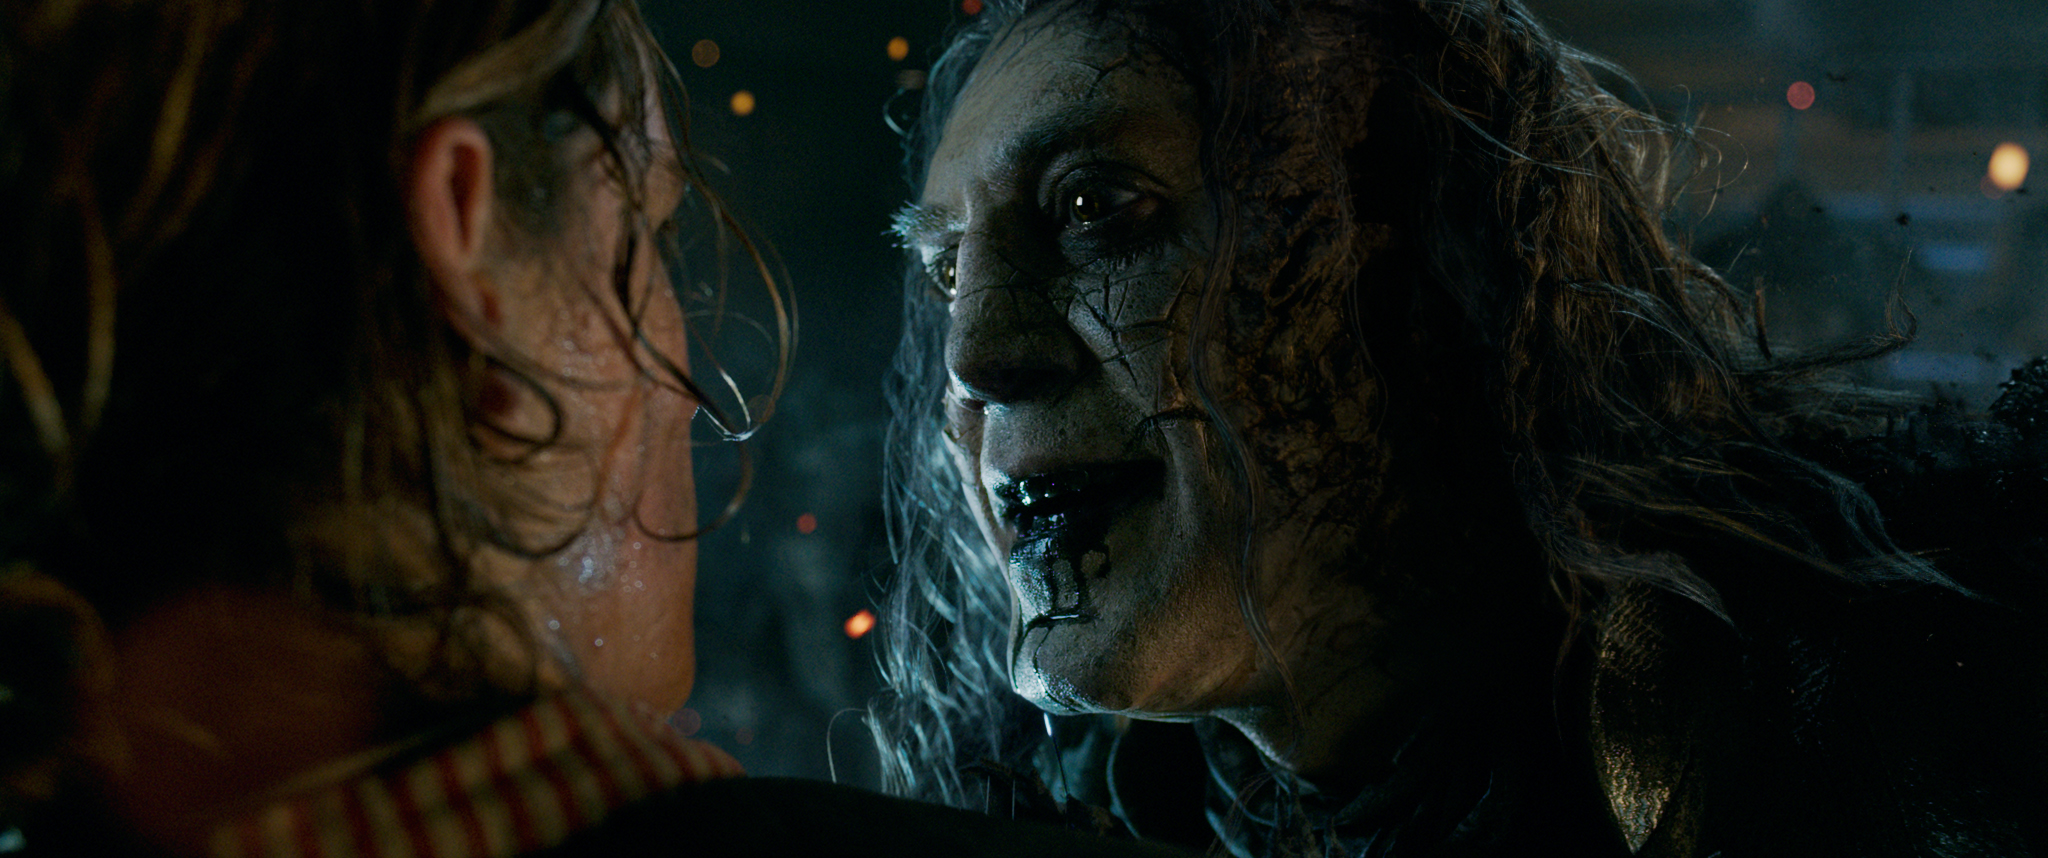 javier bardem pirates of the caribbean dead men tell no tales image